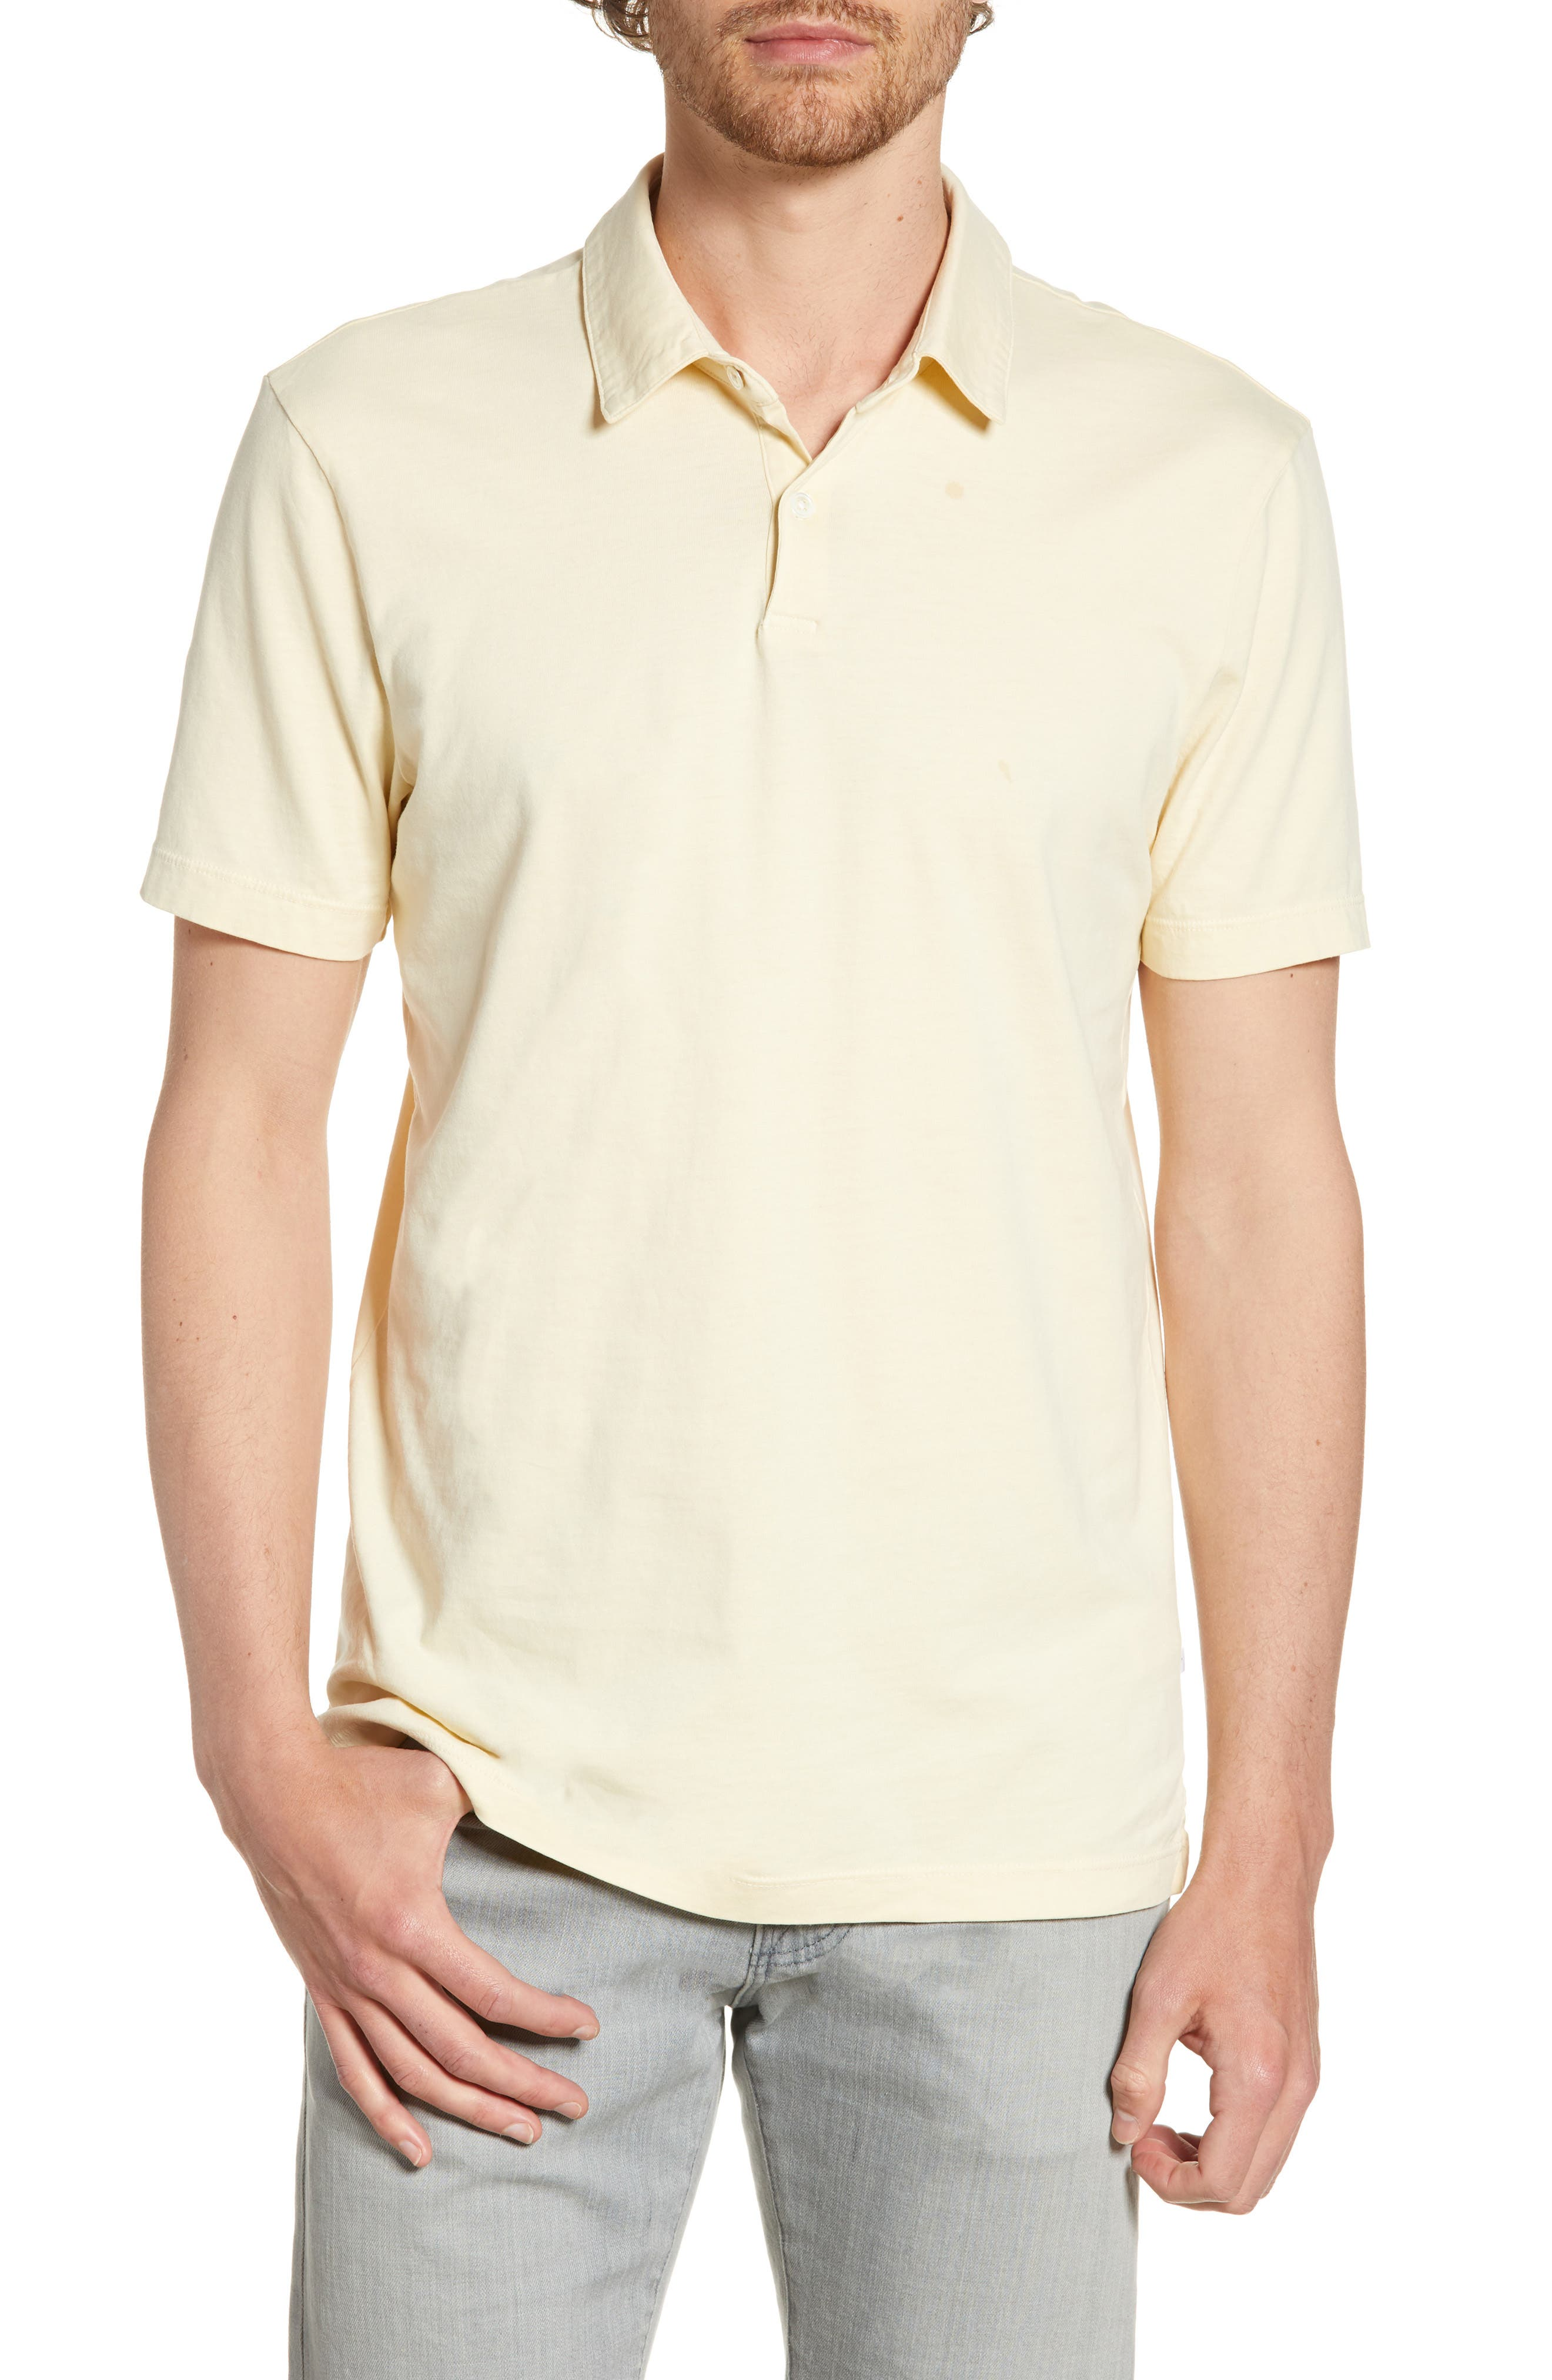 JAMES PERSE Slim Fit Sueded Jersey Polo, Main, color, GESSO